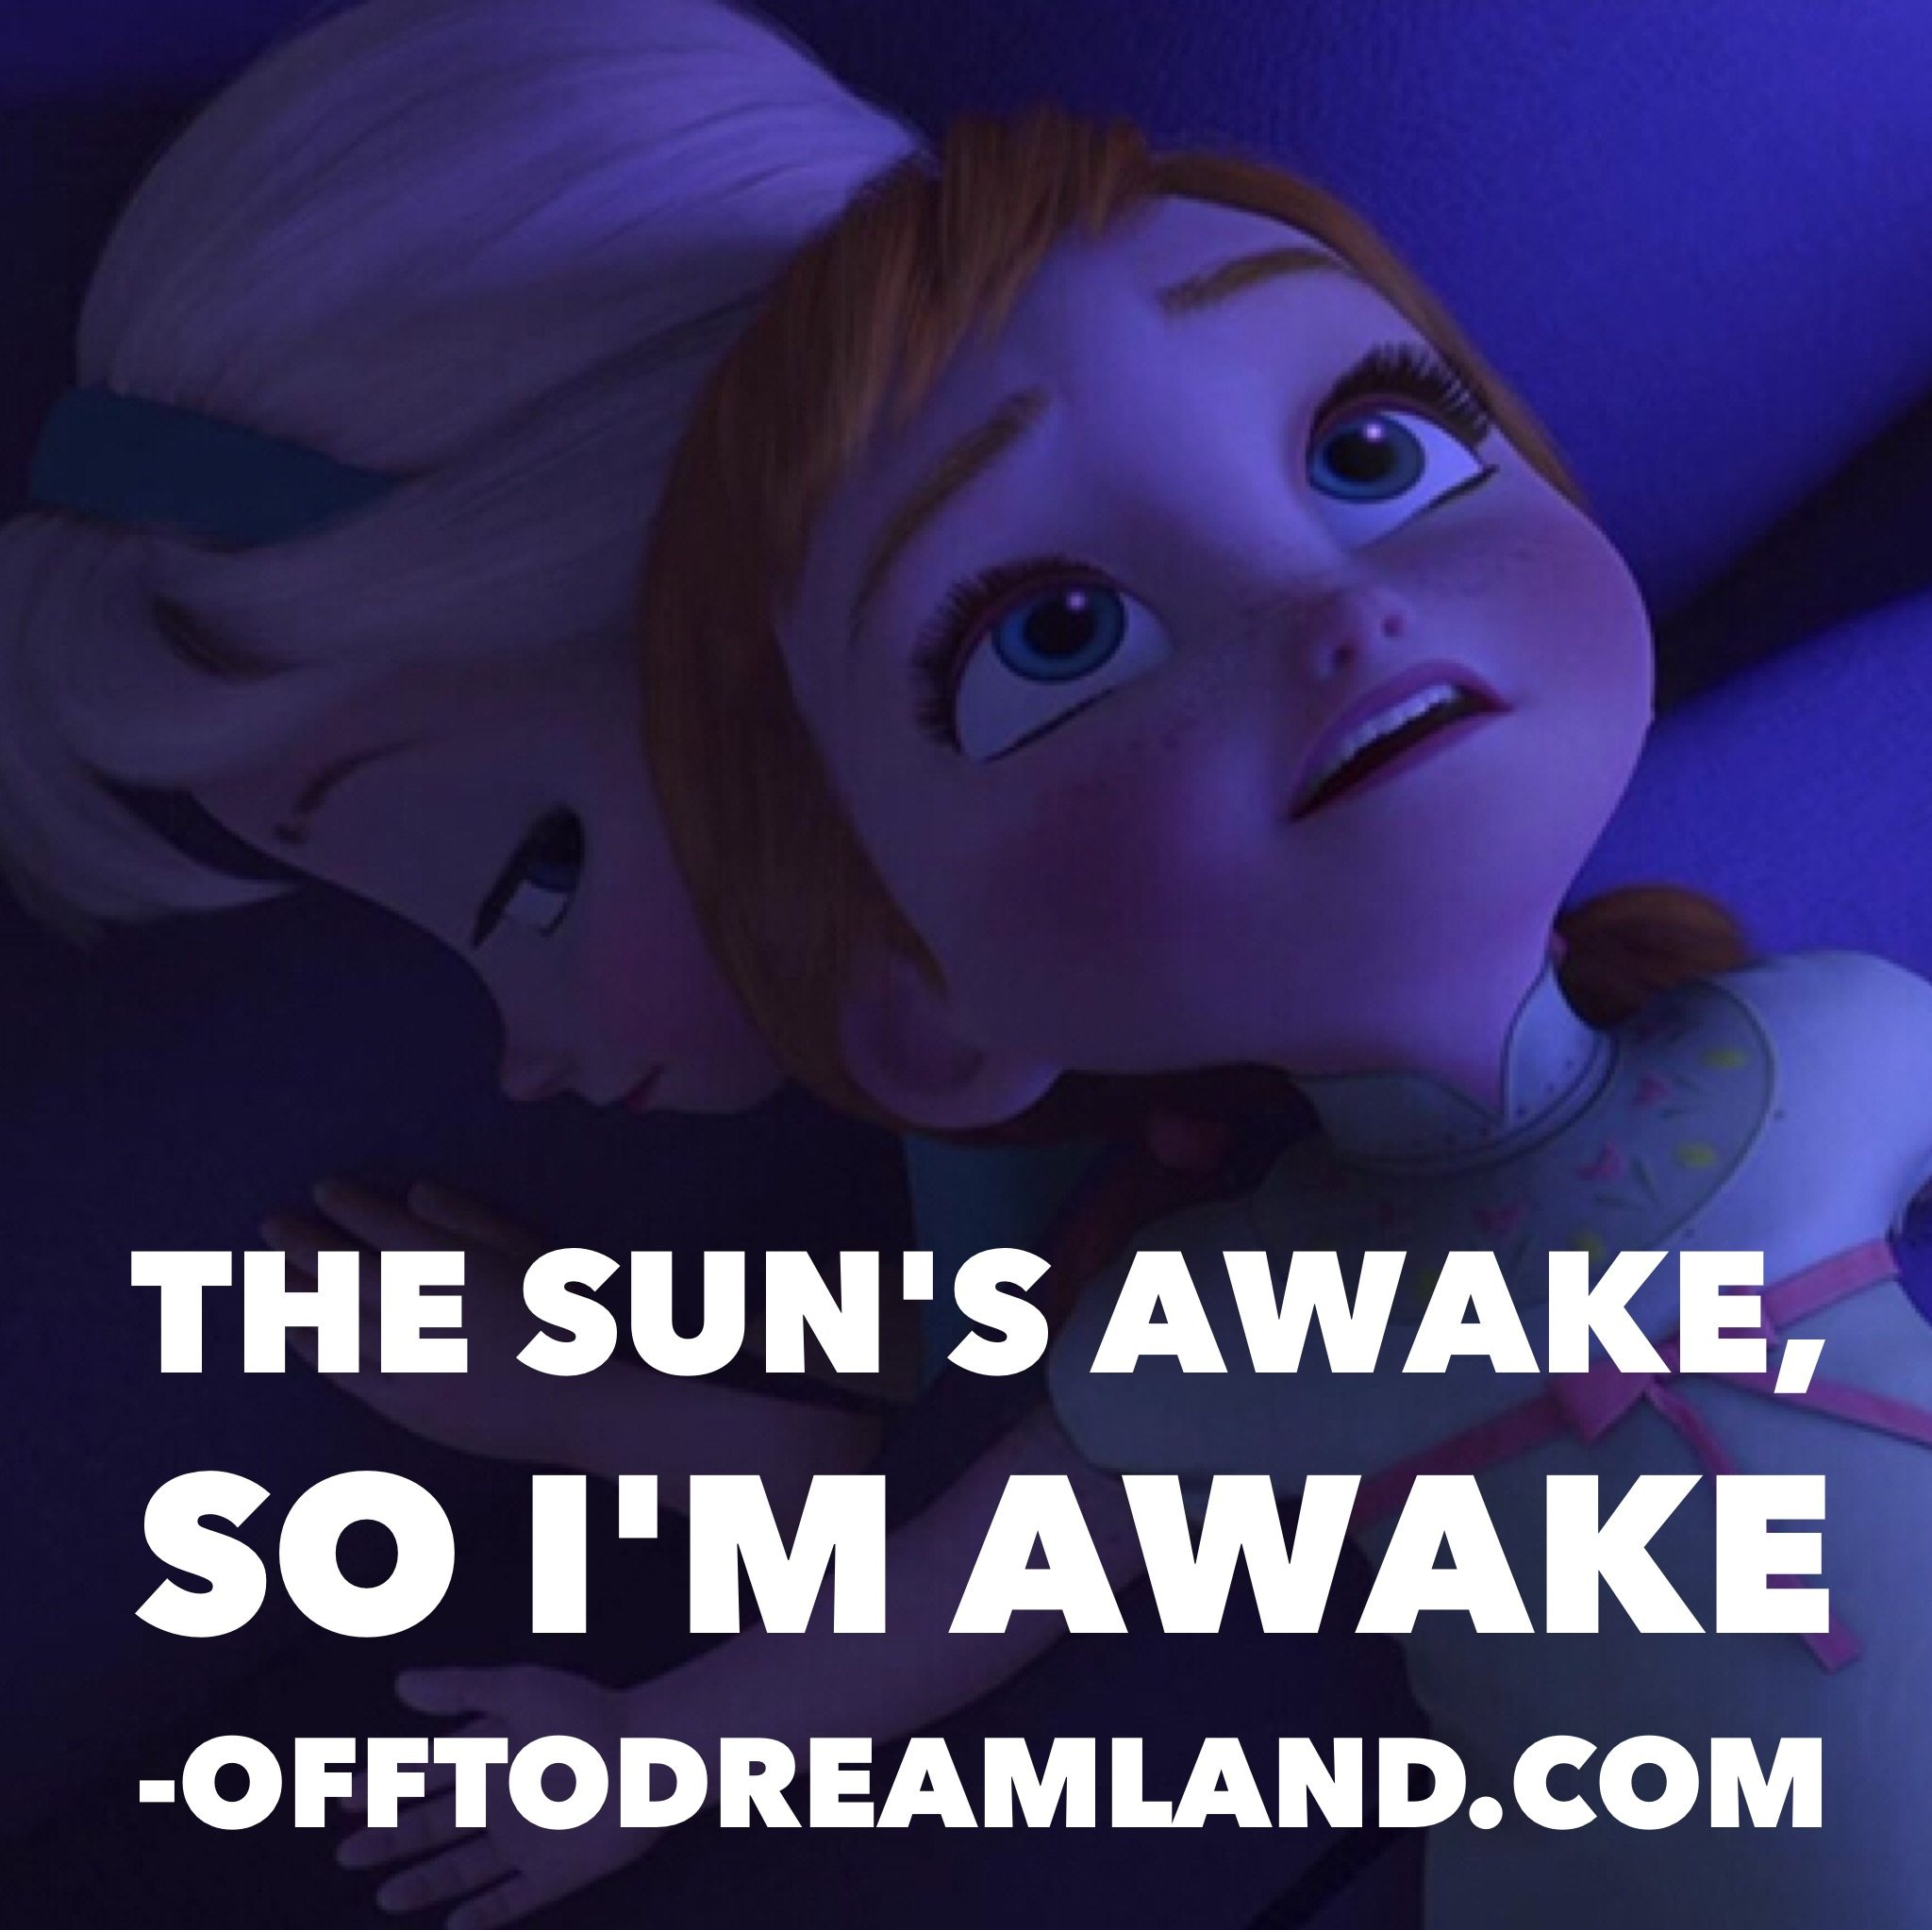 Daylight Saving Sleep Tips: The Sun's Awake